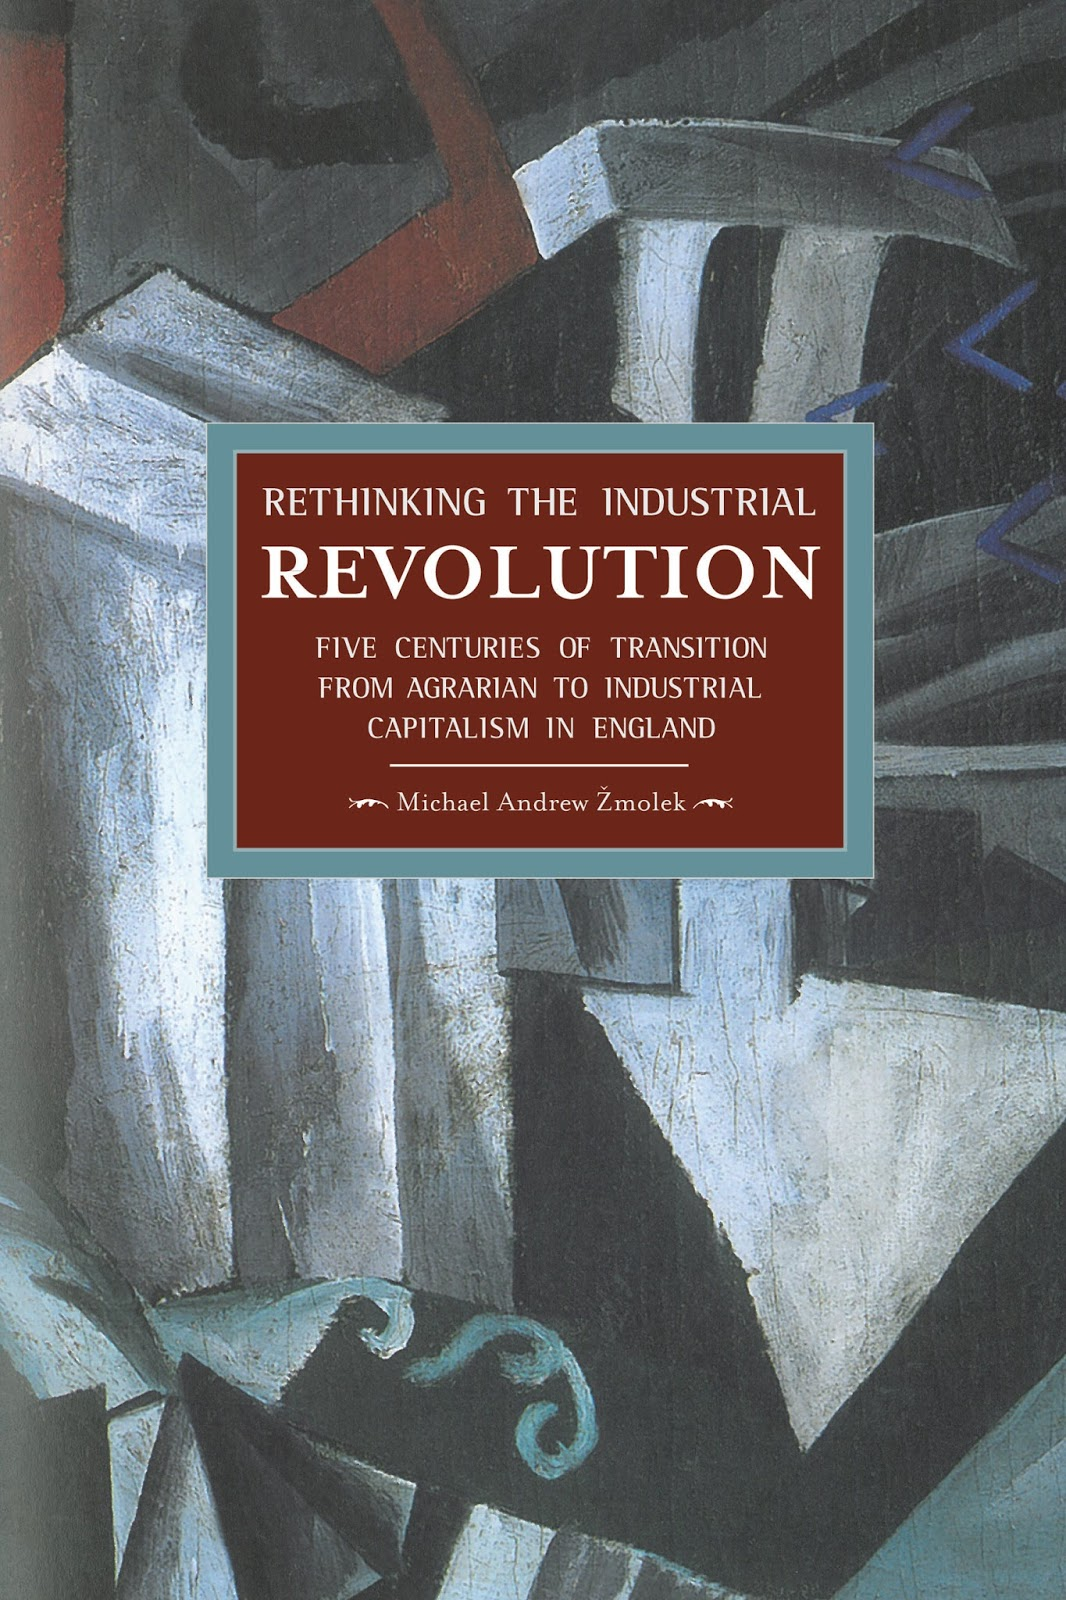 resolutereader michael andrew Žmolek rethinking the industrial michael andrew Žmolek rethinking the industrial revolution five centuries of transition from agrarian to industrial capitalism in england